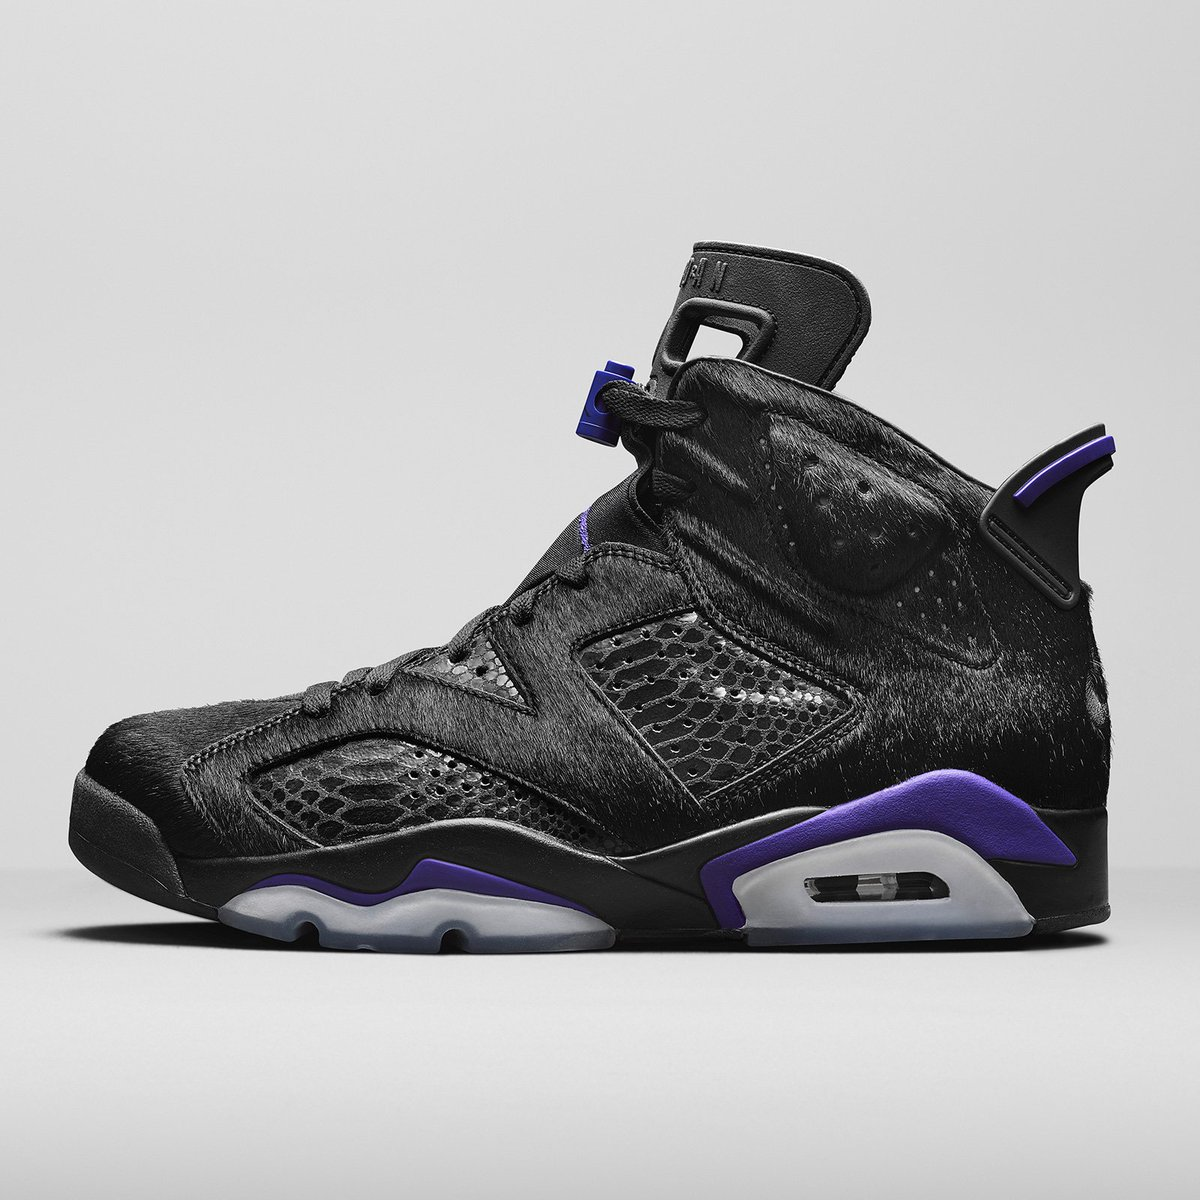 "899feb74ddd Social Status x Jordan 6 Retro NRG ""Pony Hair"" official images #NikeAir  February 13th https://j23app.com/s/2075/ pic.twitter.com/gb3N4Dk2RK"